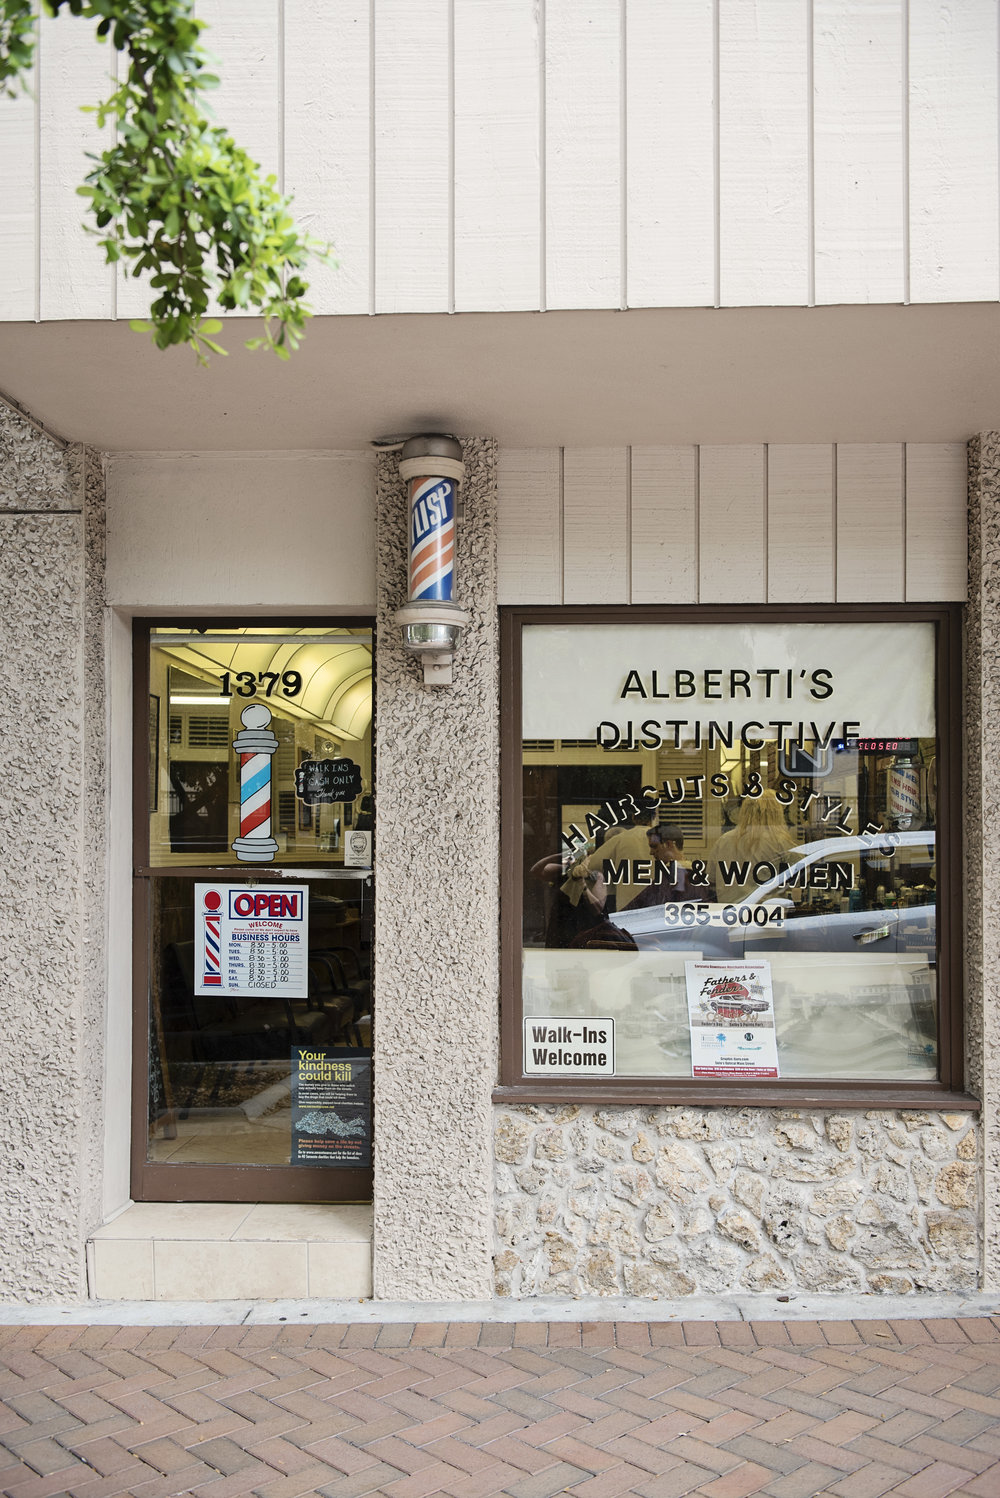 Copy of Alberti's Distinctive Haircuts & Styles